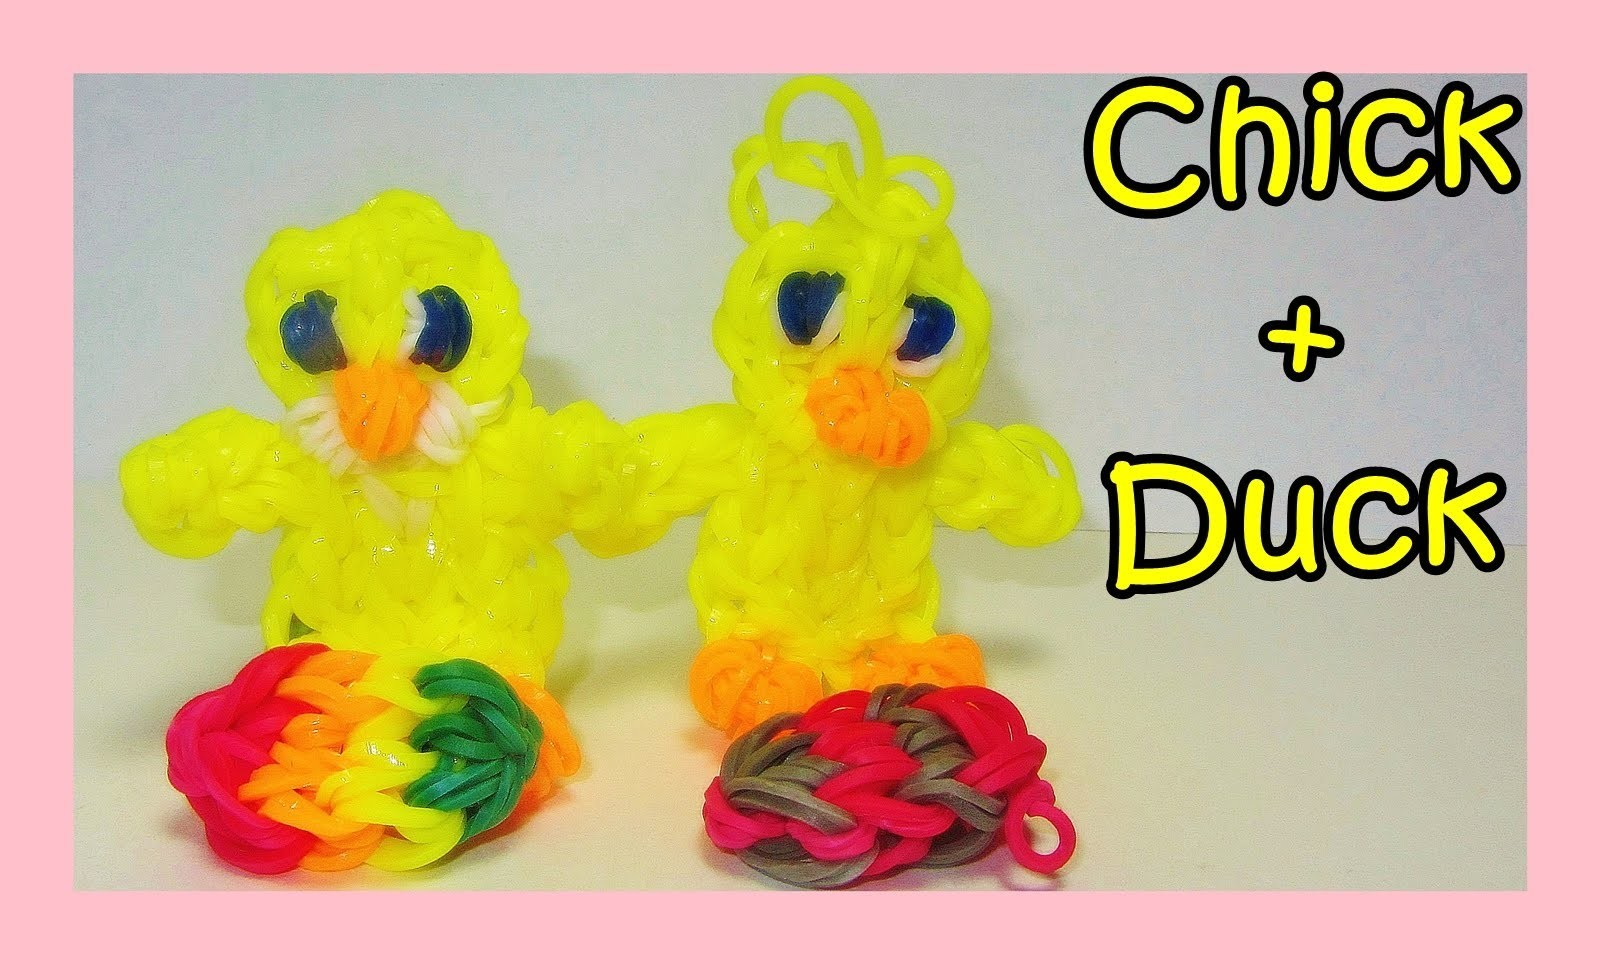 Rainbow Loom Chick + Duck Charms